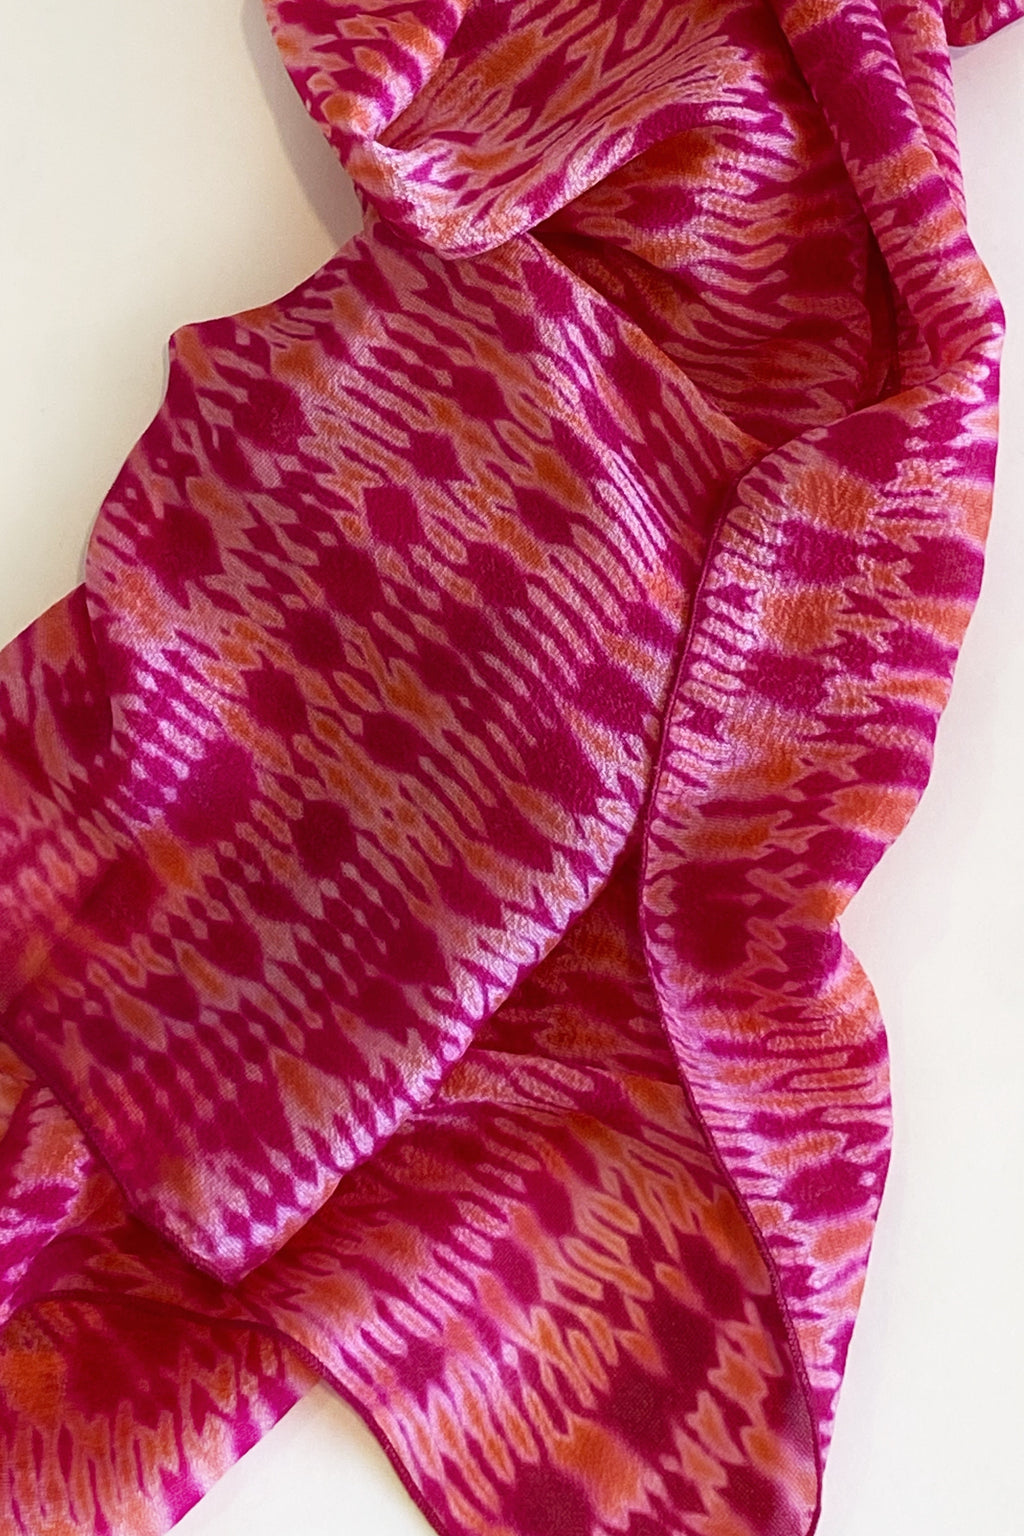 Shibori Dyed Silk Scarf in Fuschia Peach Crepe